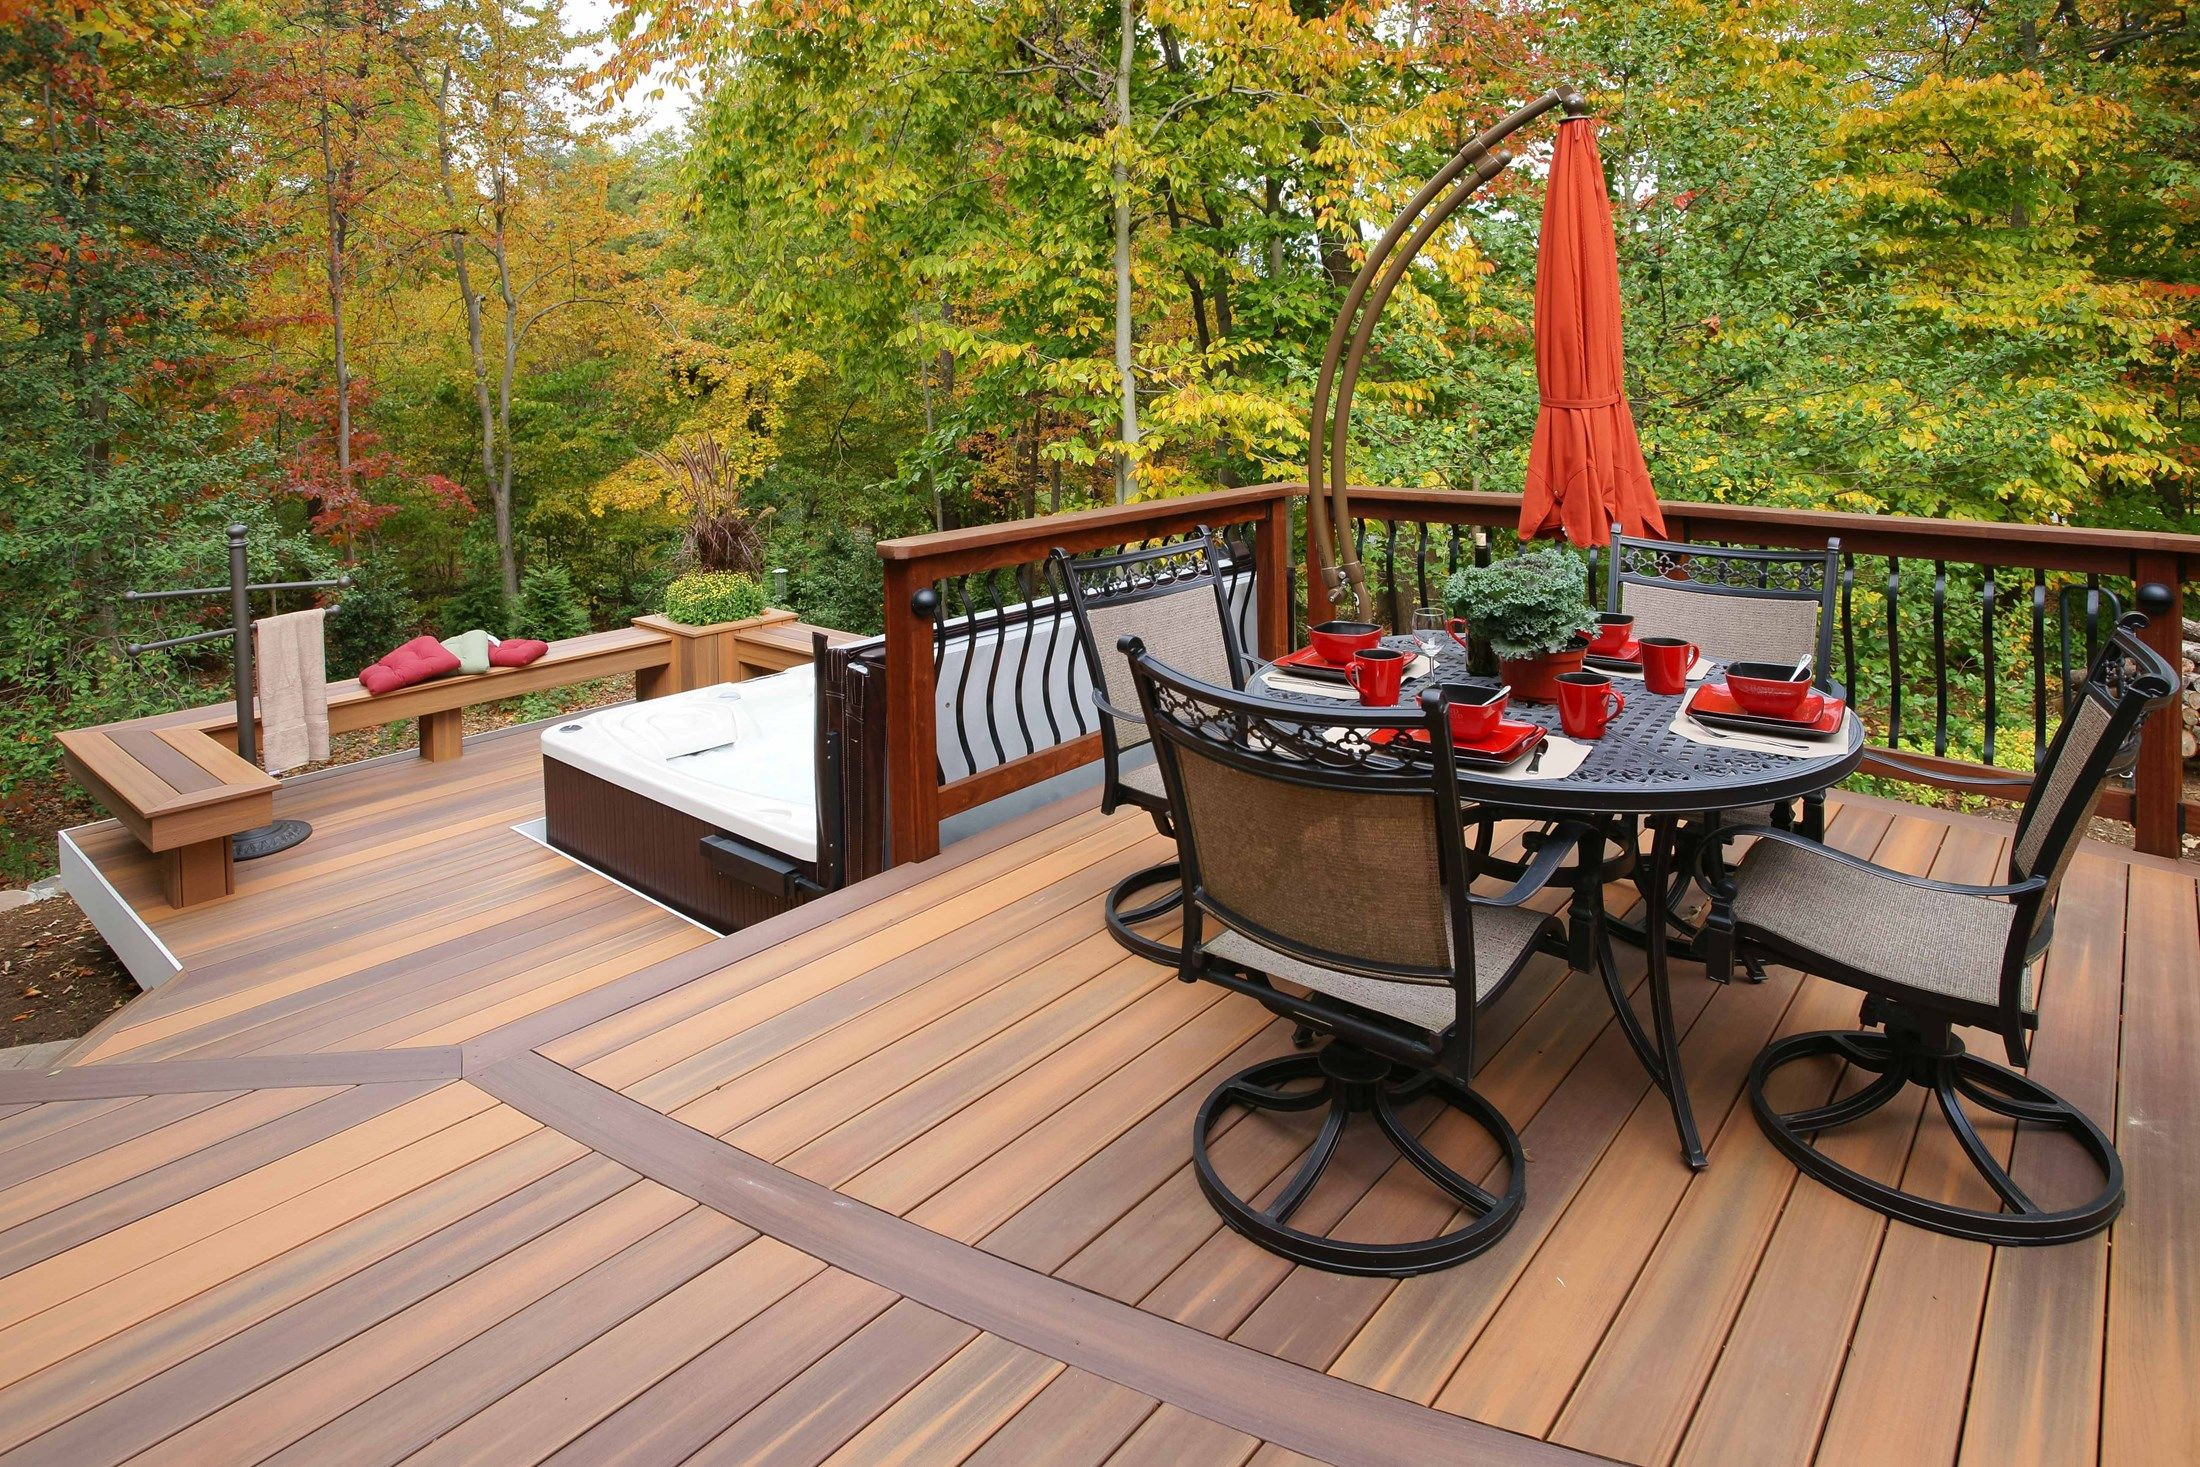 Davidson curved deck - Picture 1431